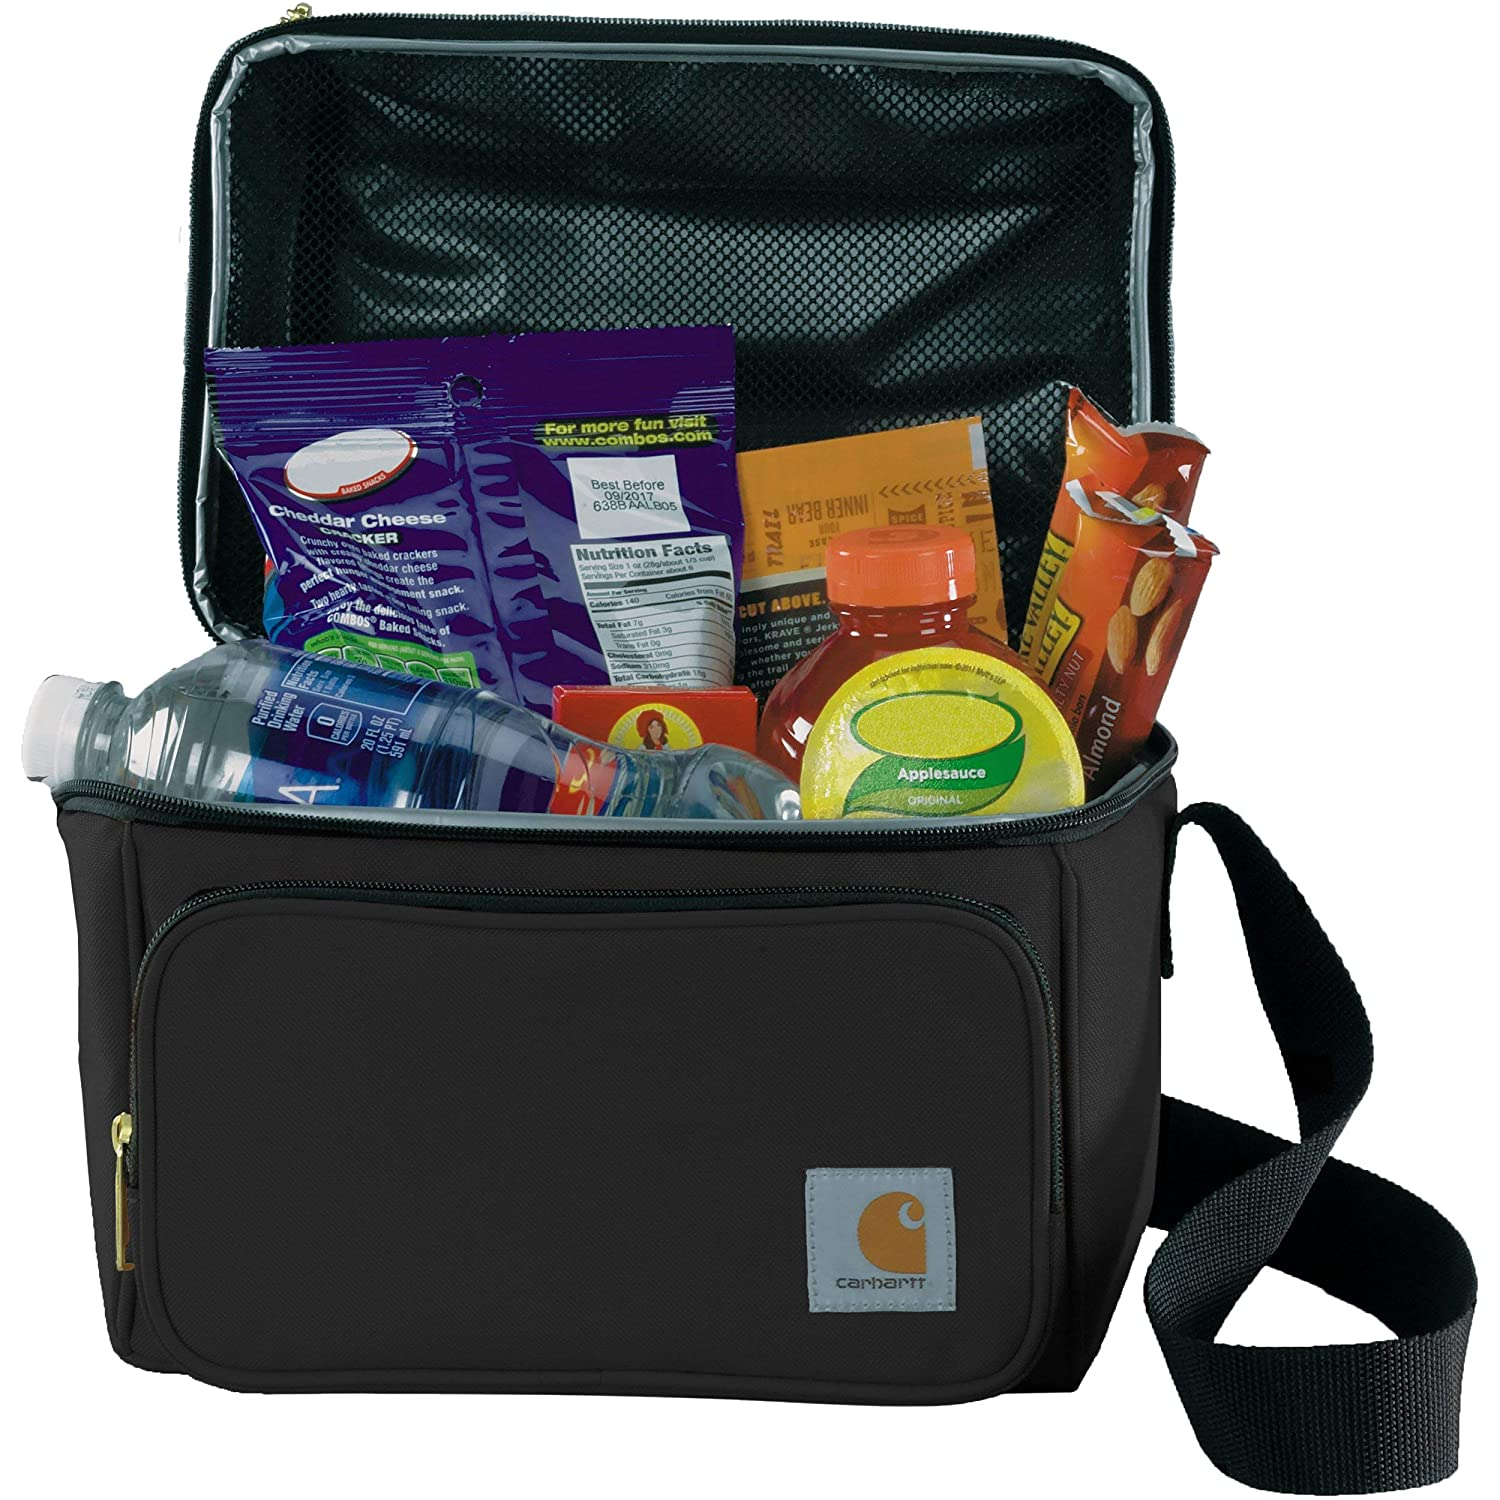 Black Carhartt Deluxe Dual Compartment Insulated Lunch Cooler Bag